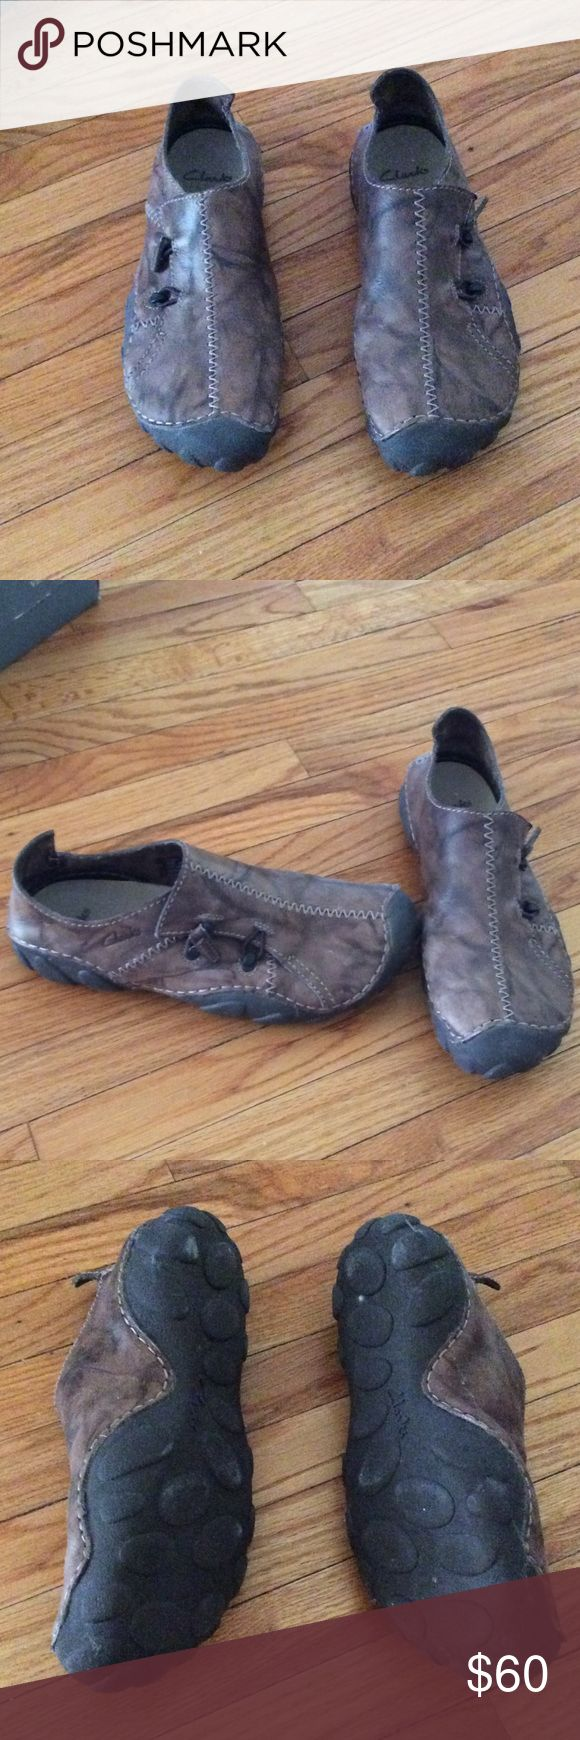 Men's clarks shoe. Brown. Excellent/ like new condition. Clarks Shoes Loafers & Slip-Ons